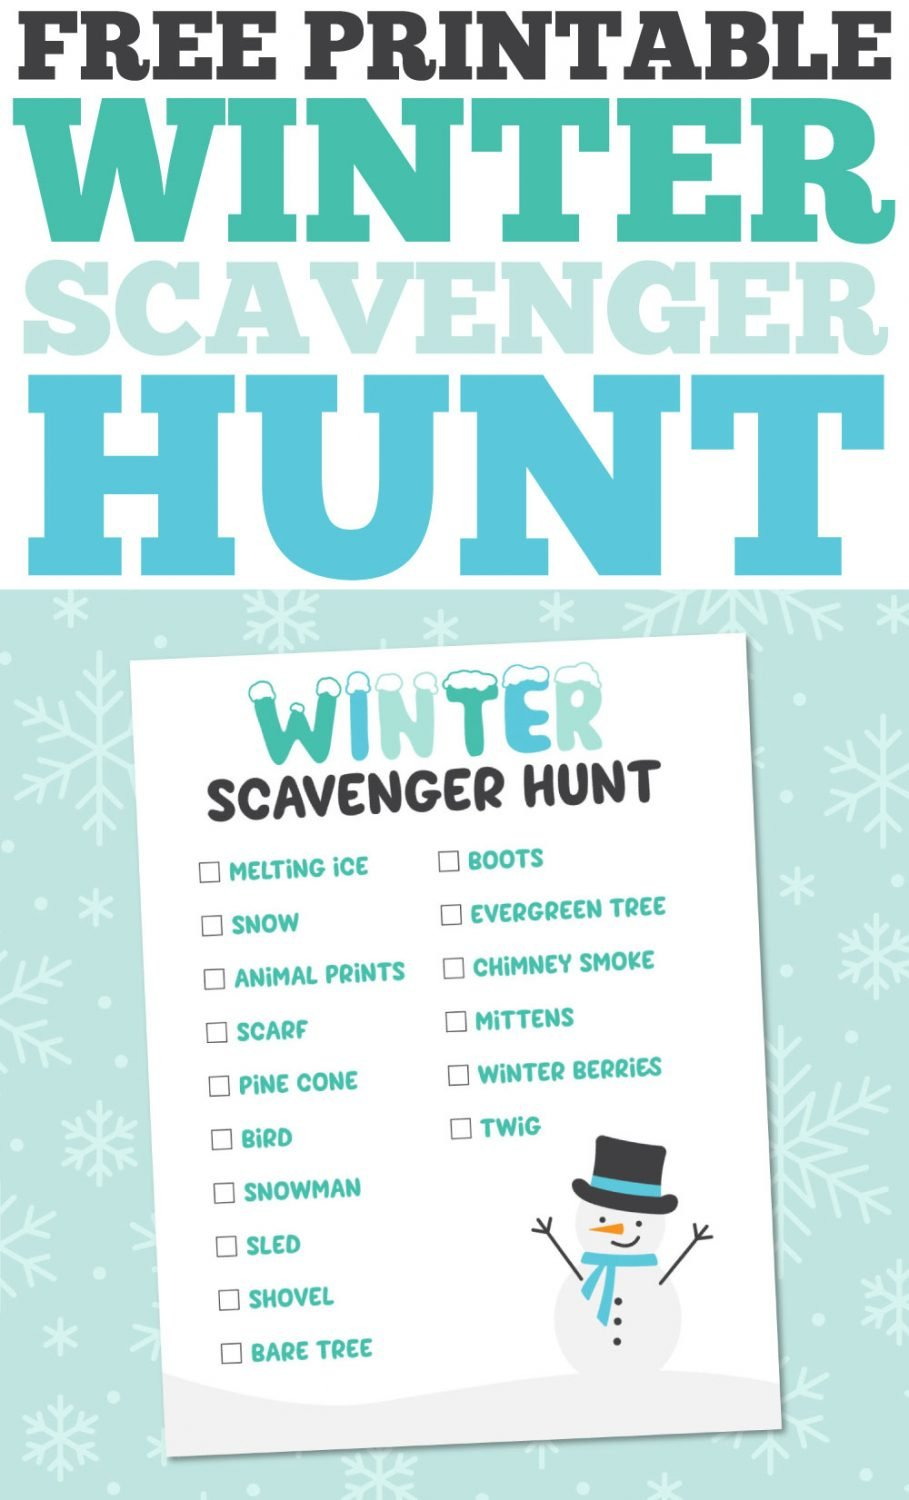 Winter Scavenger Hunt pin image